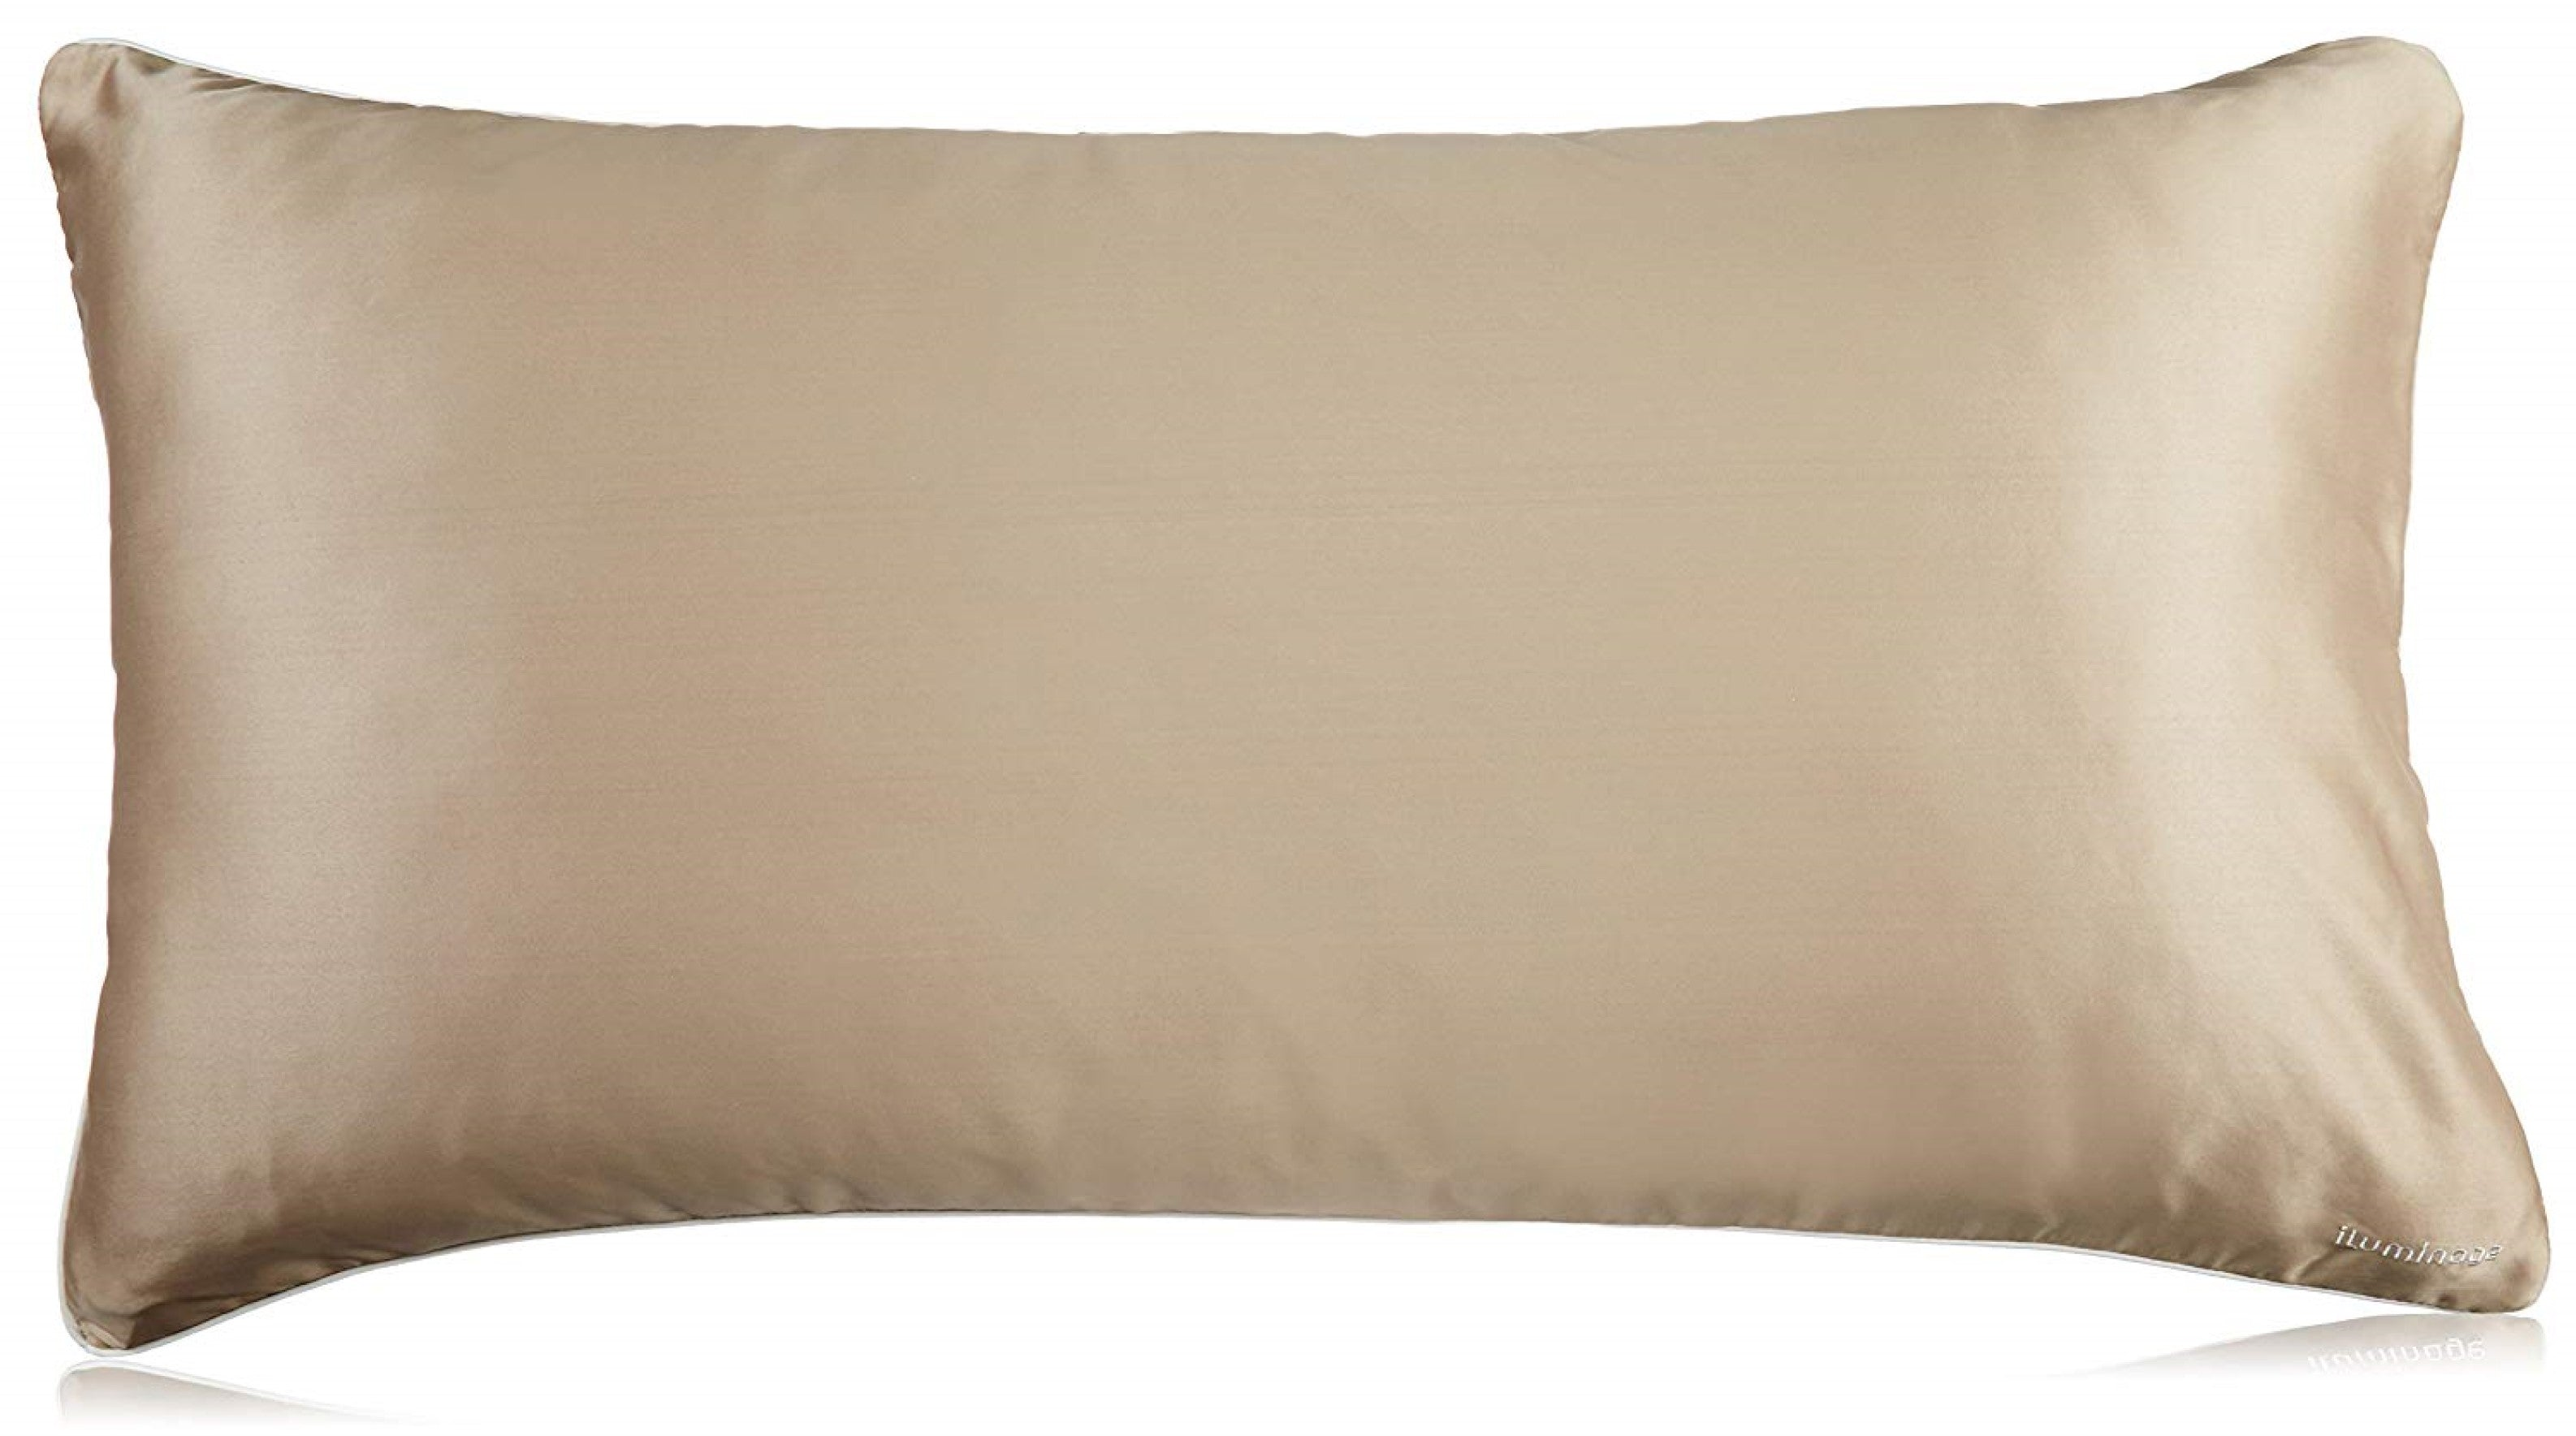 Iluminage Skin Rejuvenating Pillowcase with Anti-Aging Copper Technology